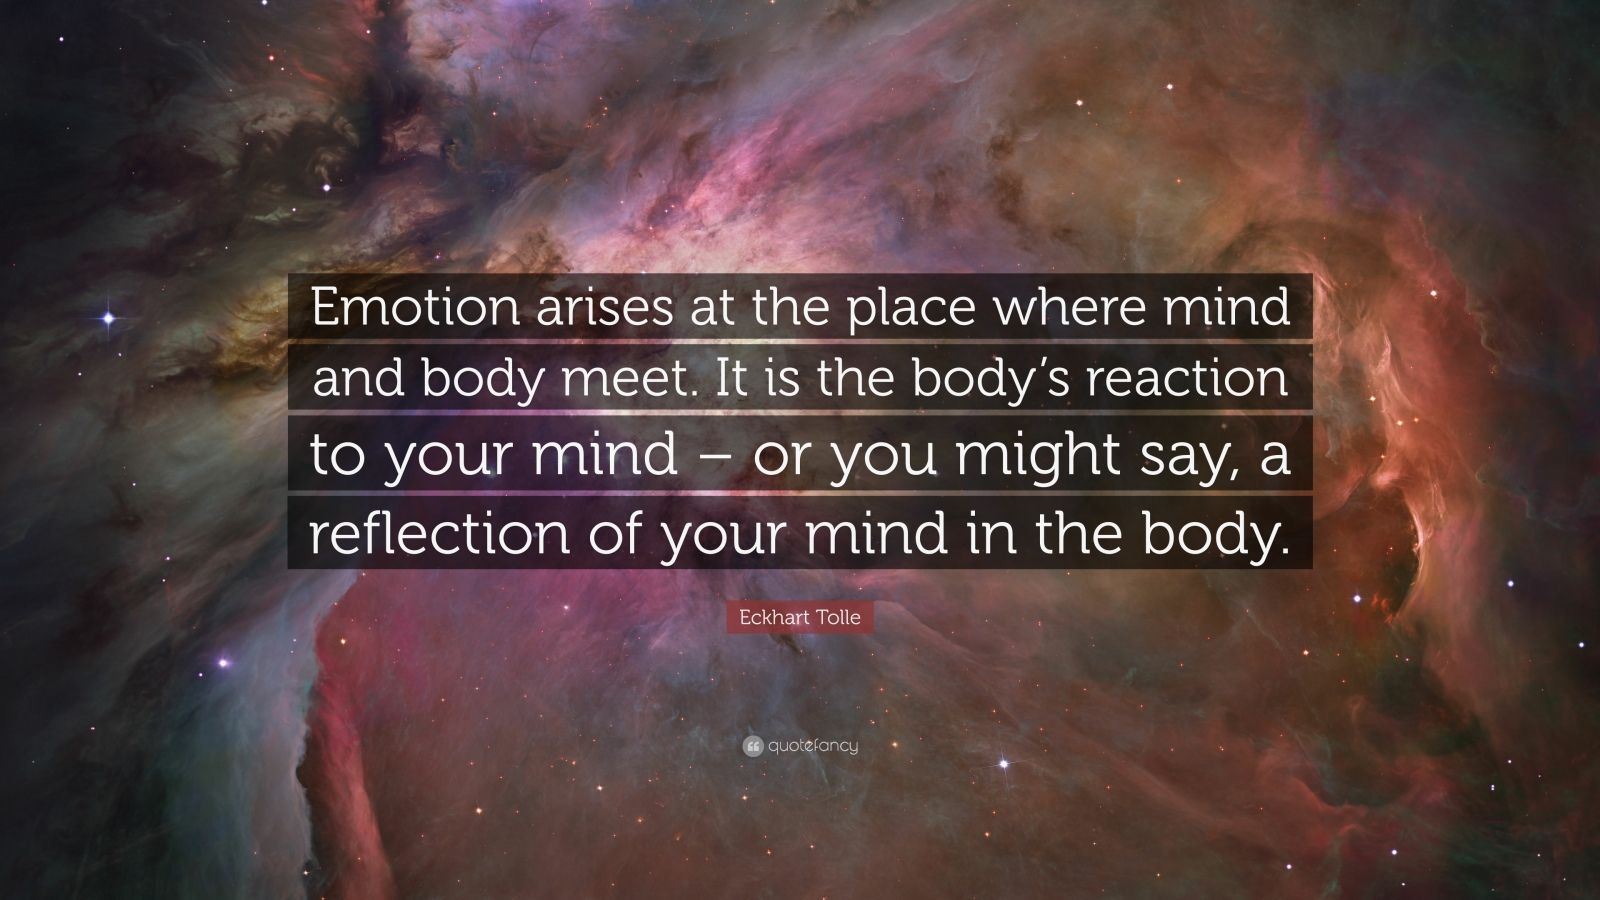 """Eckhart Tolle Quote: """"Emotion arises at the place where mind and body meet. It is the body's reaction to your mind – or you might say, a reflection of your mind in the body."""""""